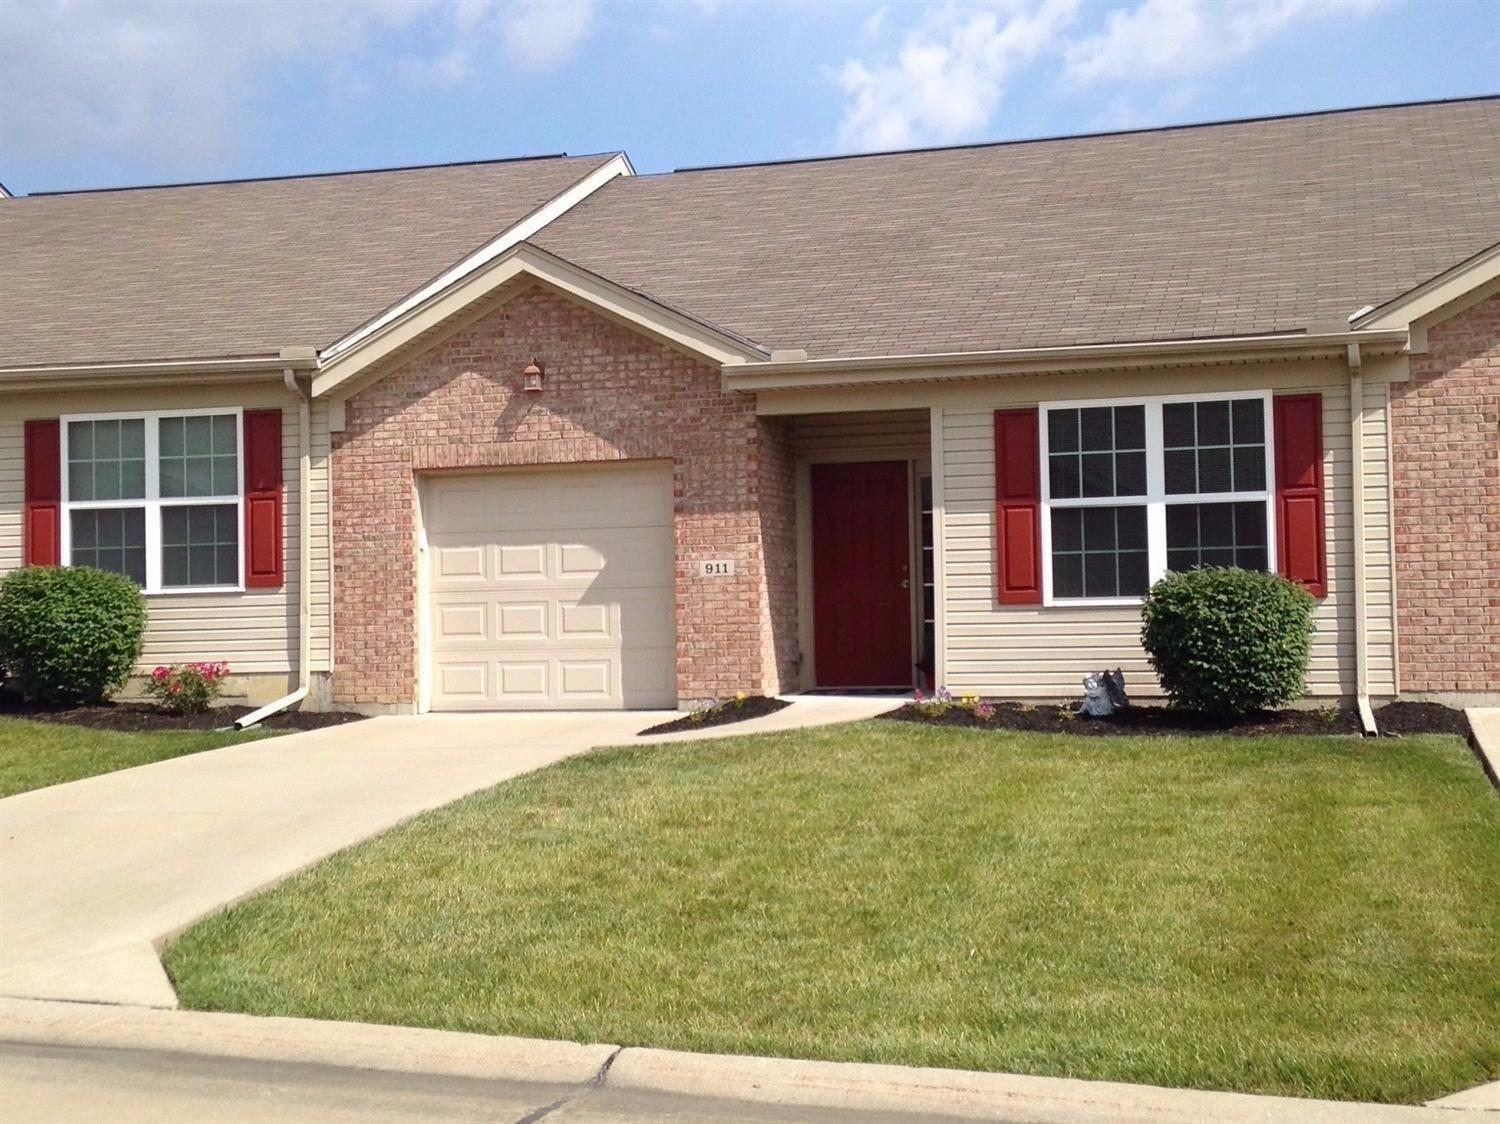 real estate photo 1 for 911 Shiredale Dr, 2 Florence, KY 41042